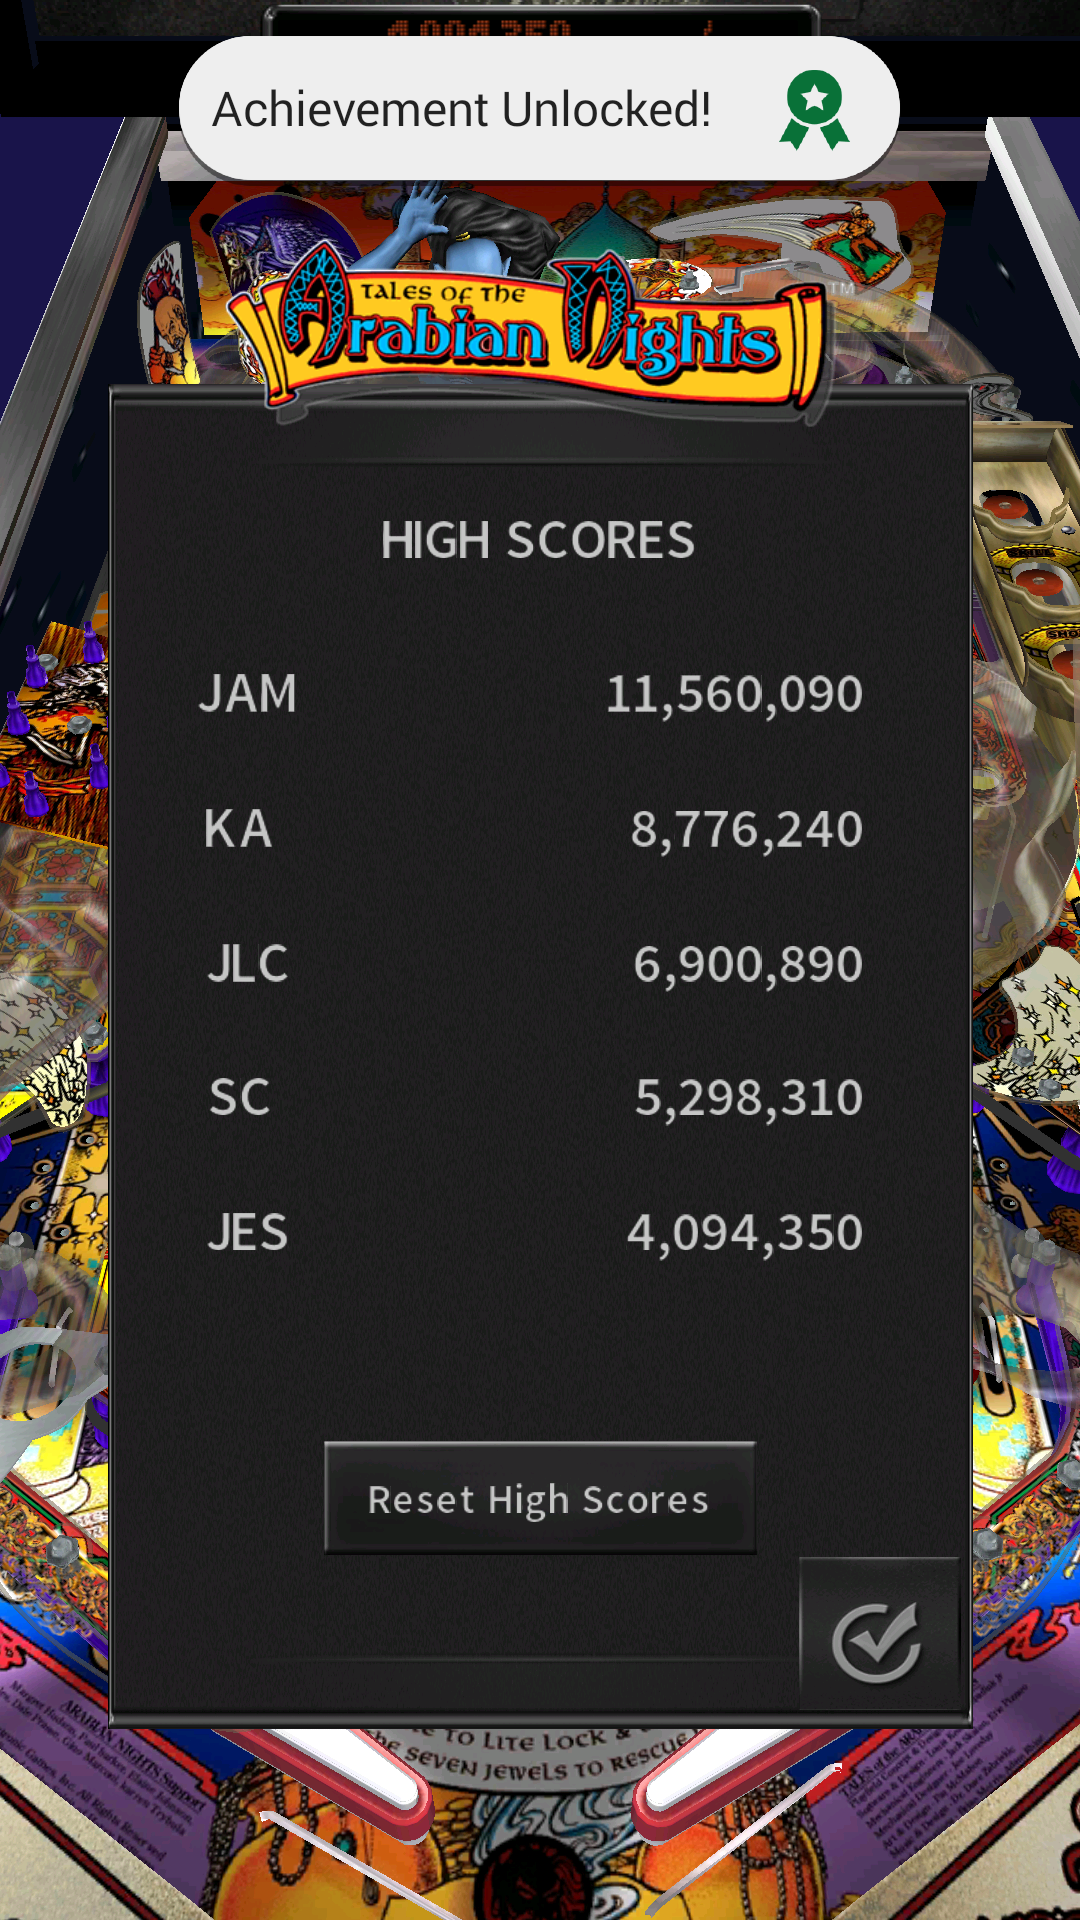 JES: Pinball Arcade: Arabian Knights (Android) 4,094,350 points on 2016-12-07 09:14:23